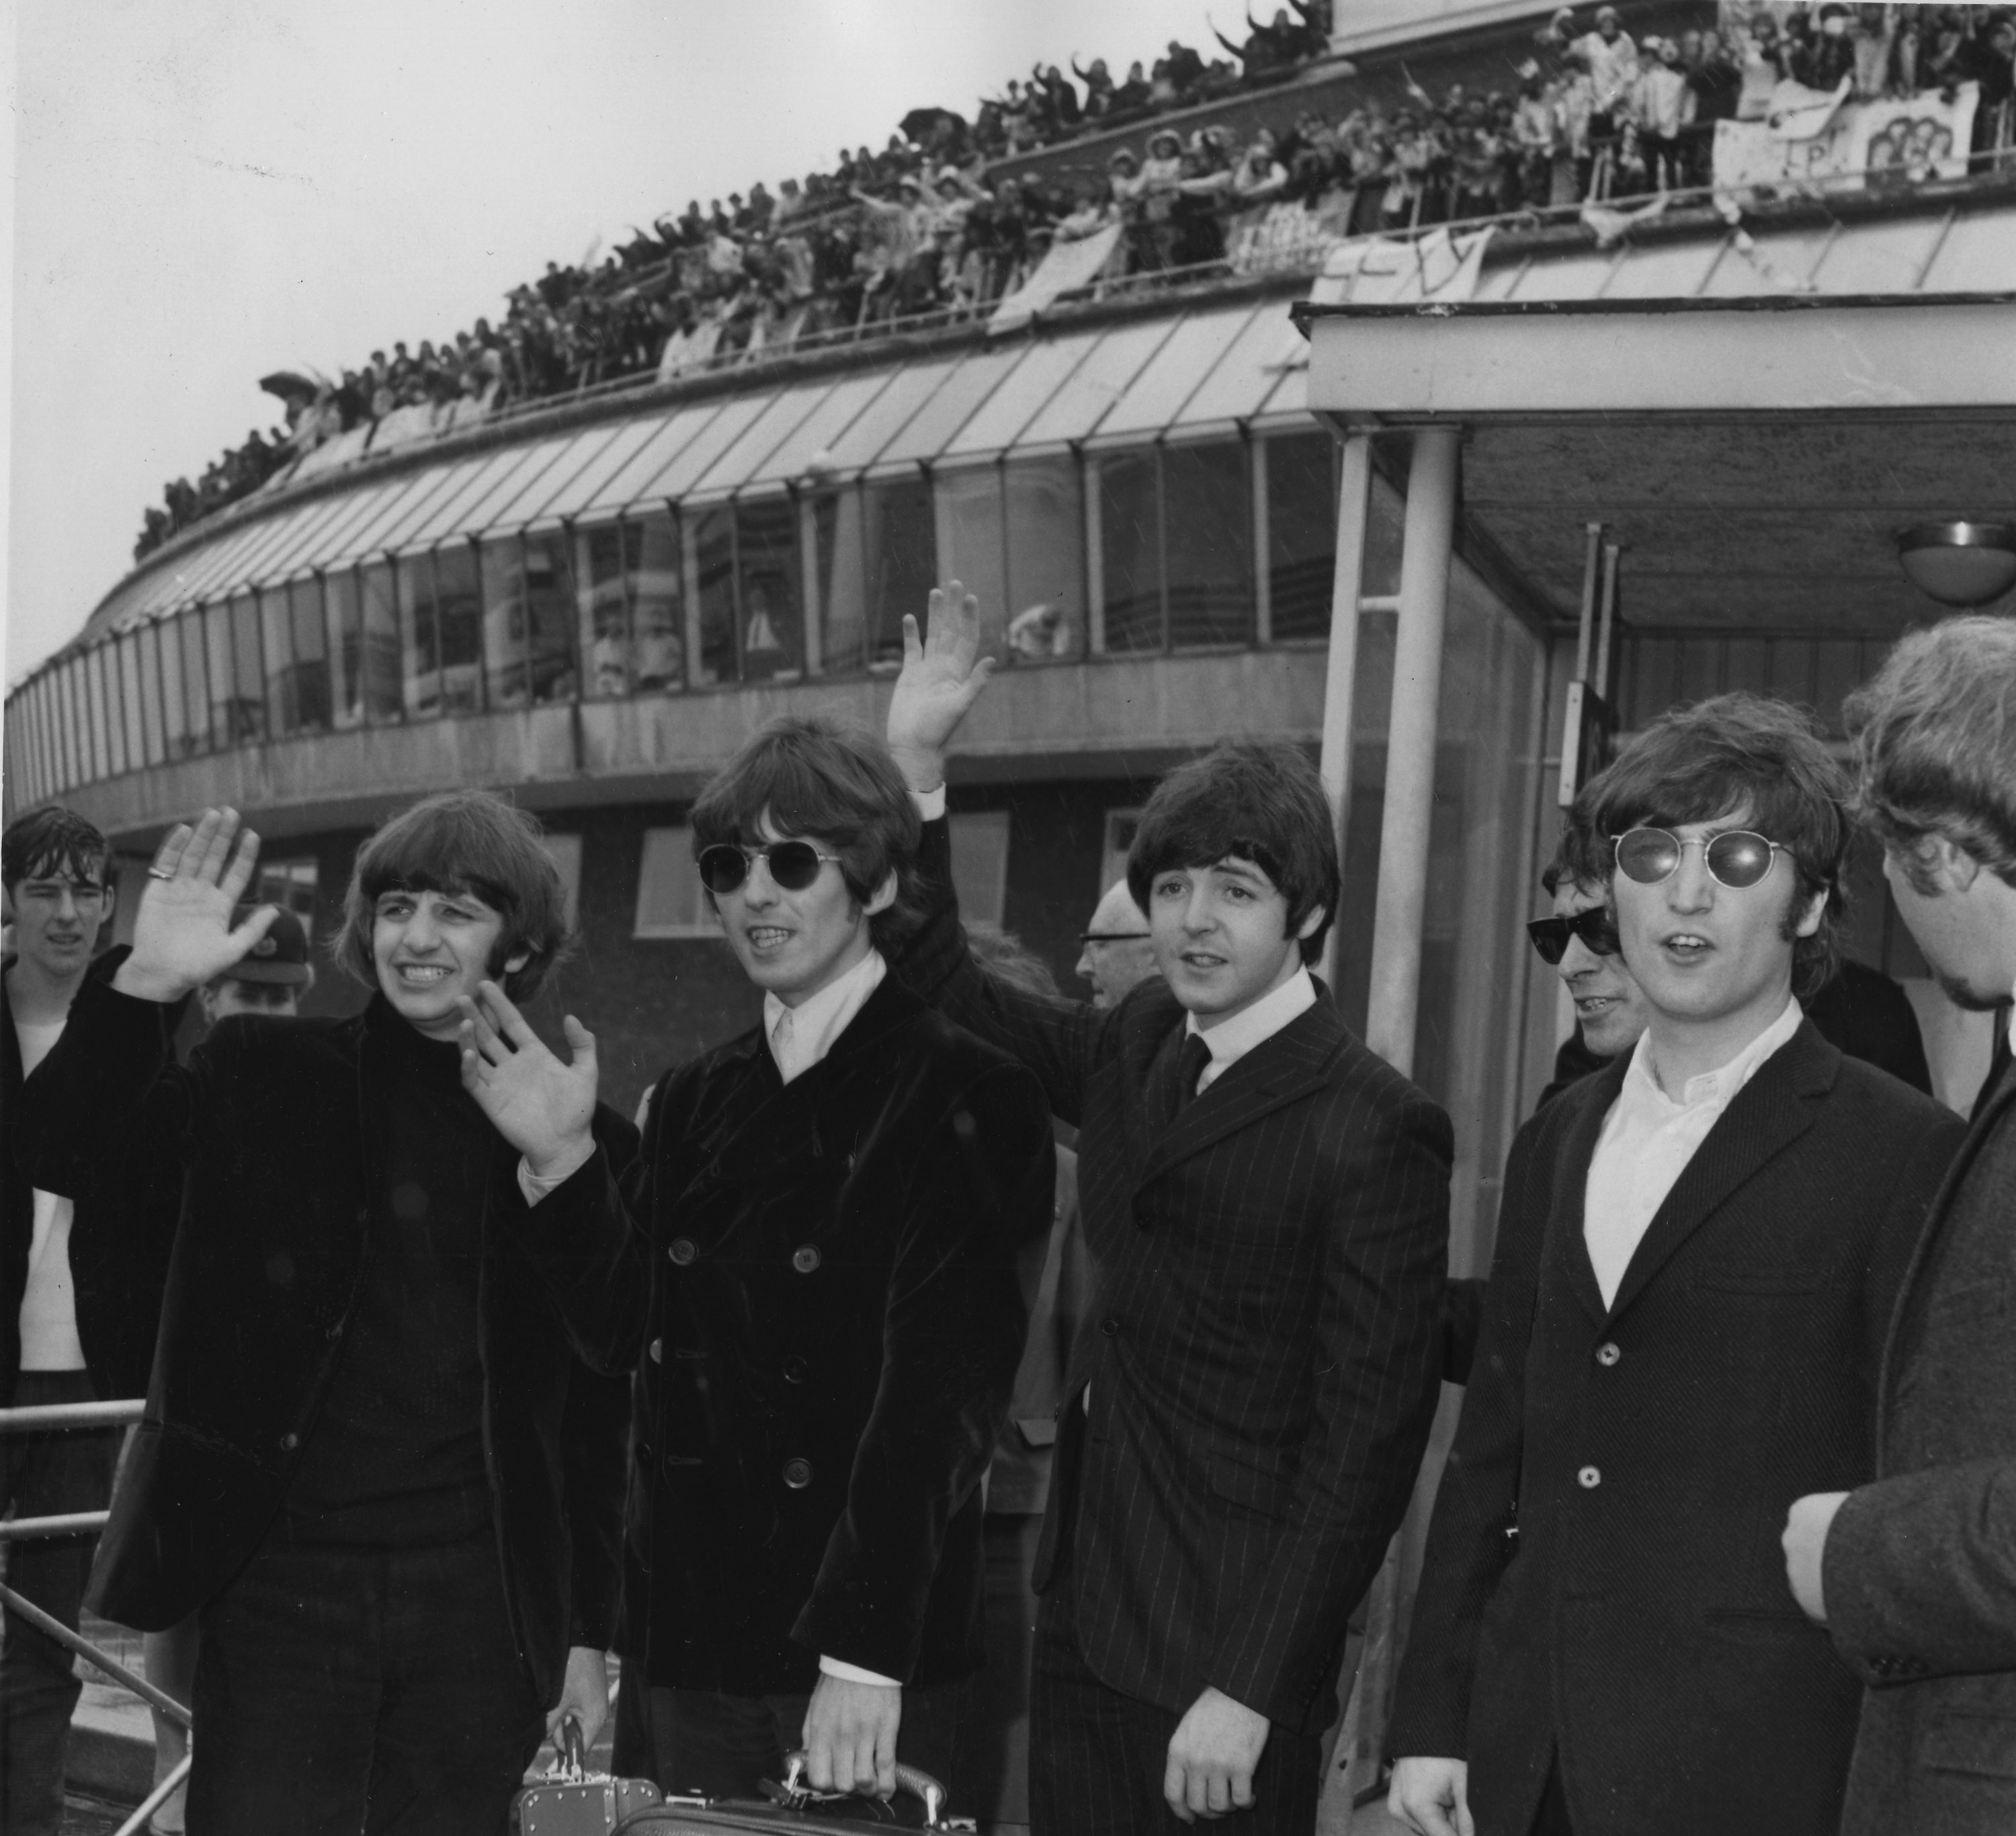 The Beatles, with Ringo Starr, George Harrison, Paul McCartney and John Lennon, from left to right, are pictured in the rain waving at the airport in London, England, August 11, 1966, prior to their departure to Boston, USA, for their tour of Canadian and American cities. (AP Photo/Harris)